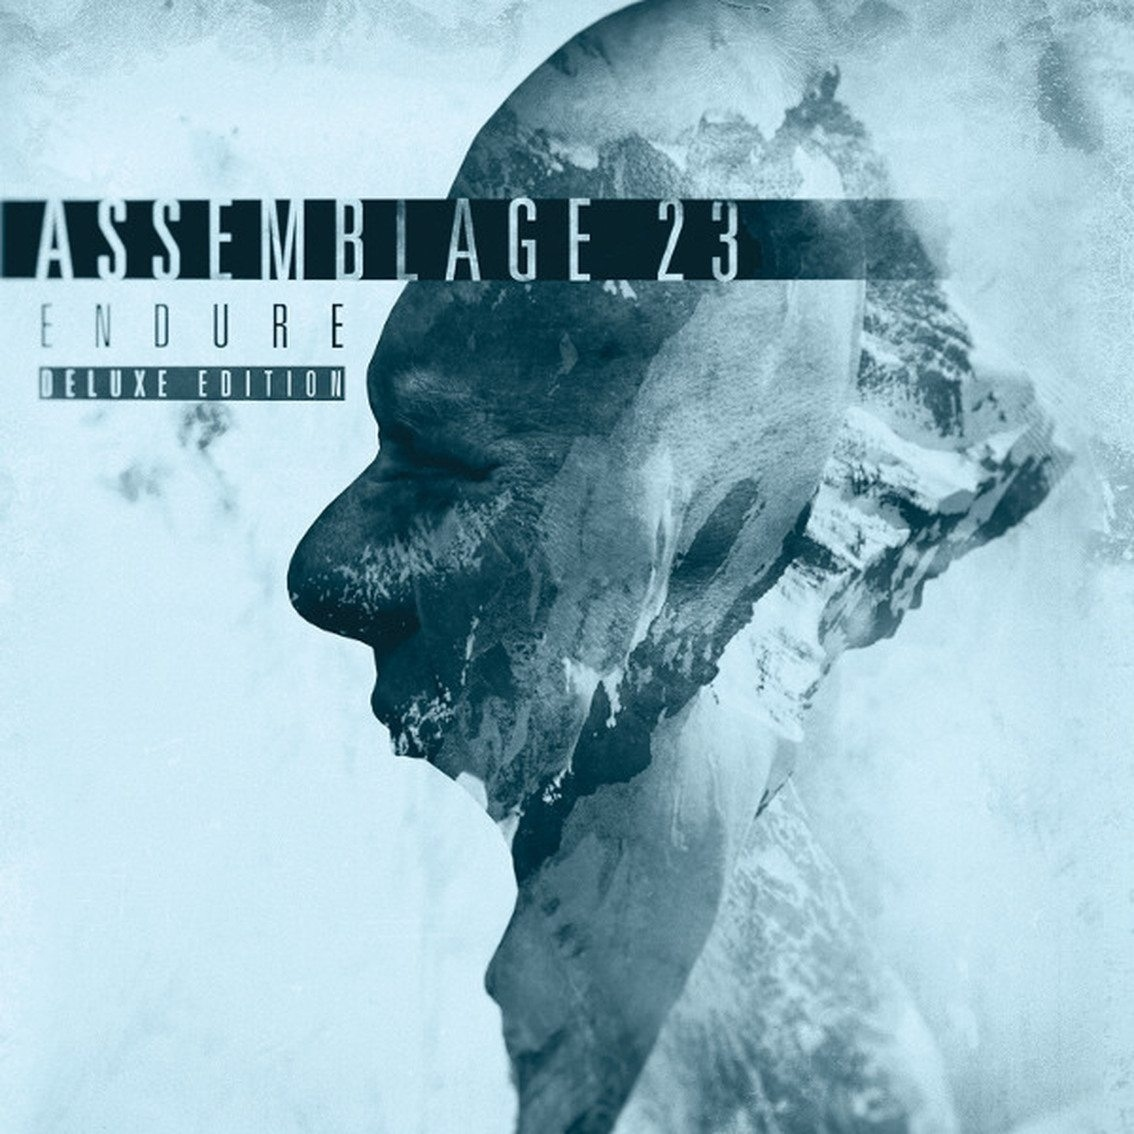 ASSEMBLAGE 23 Endure LIMITED 2CD DELUXE EDITION 2016